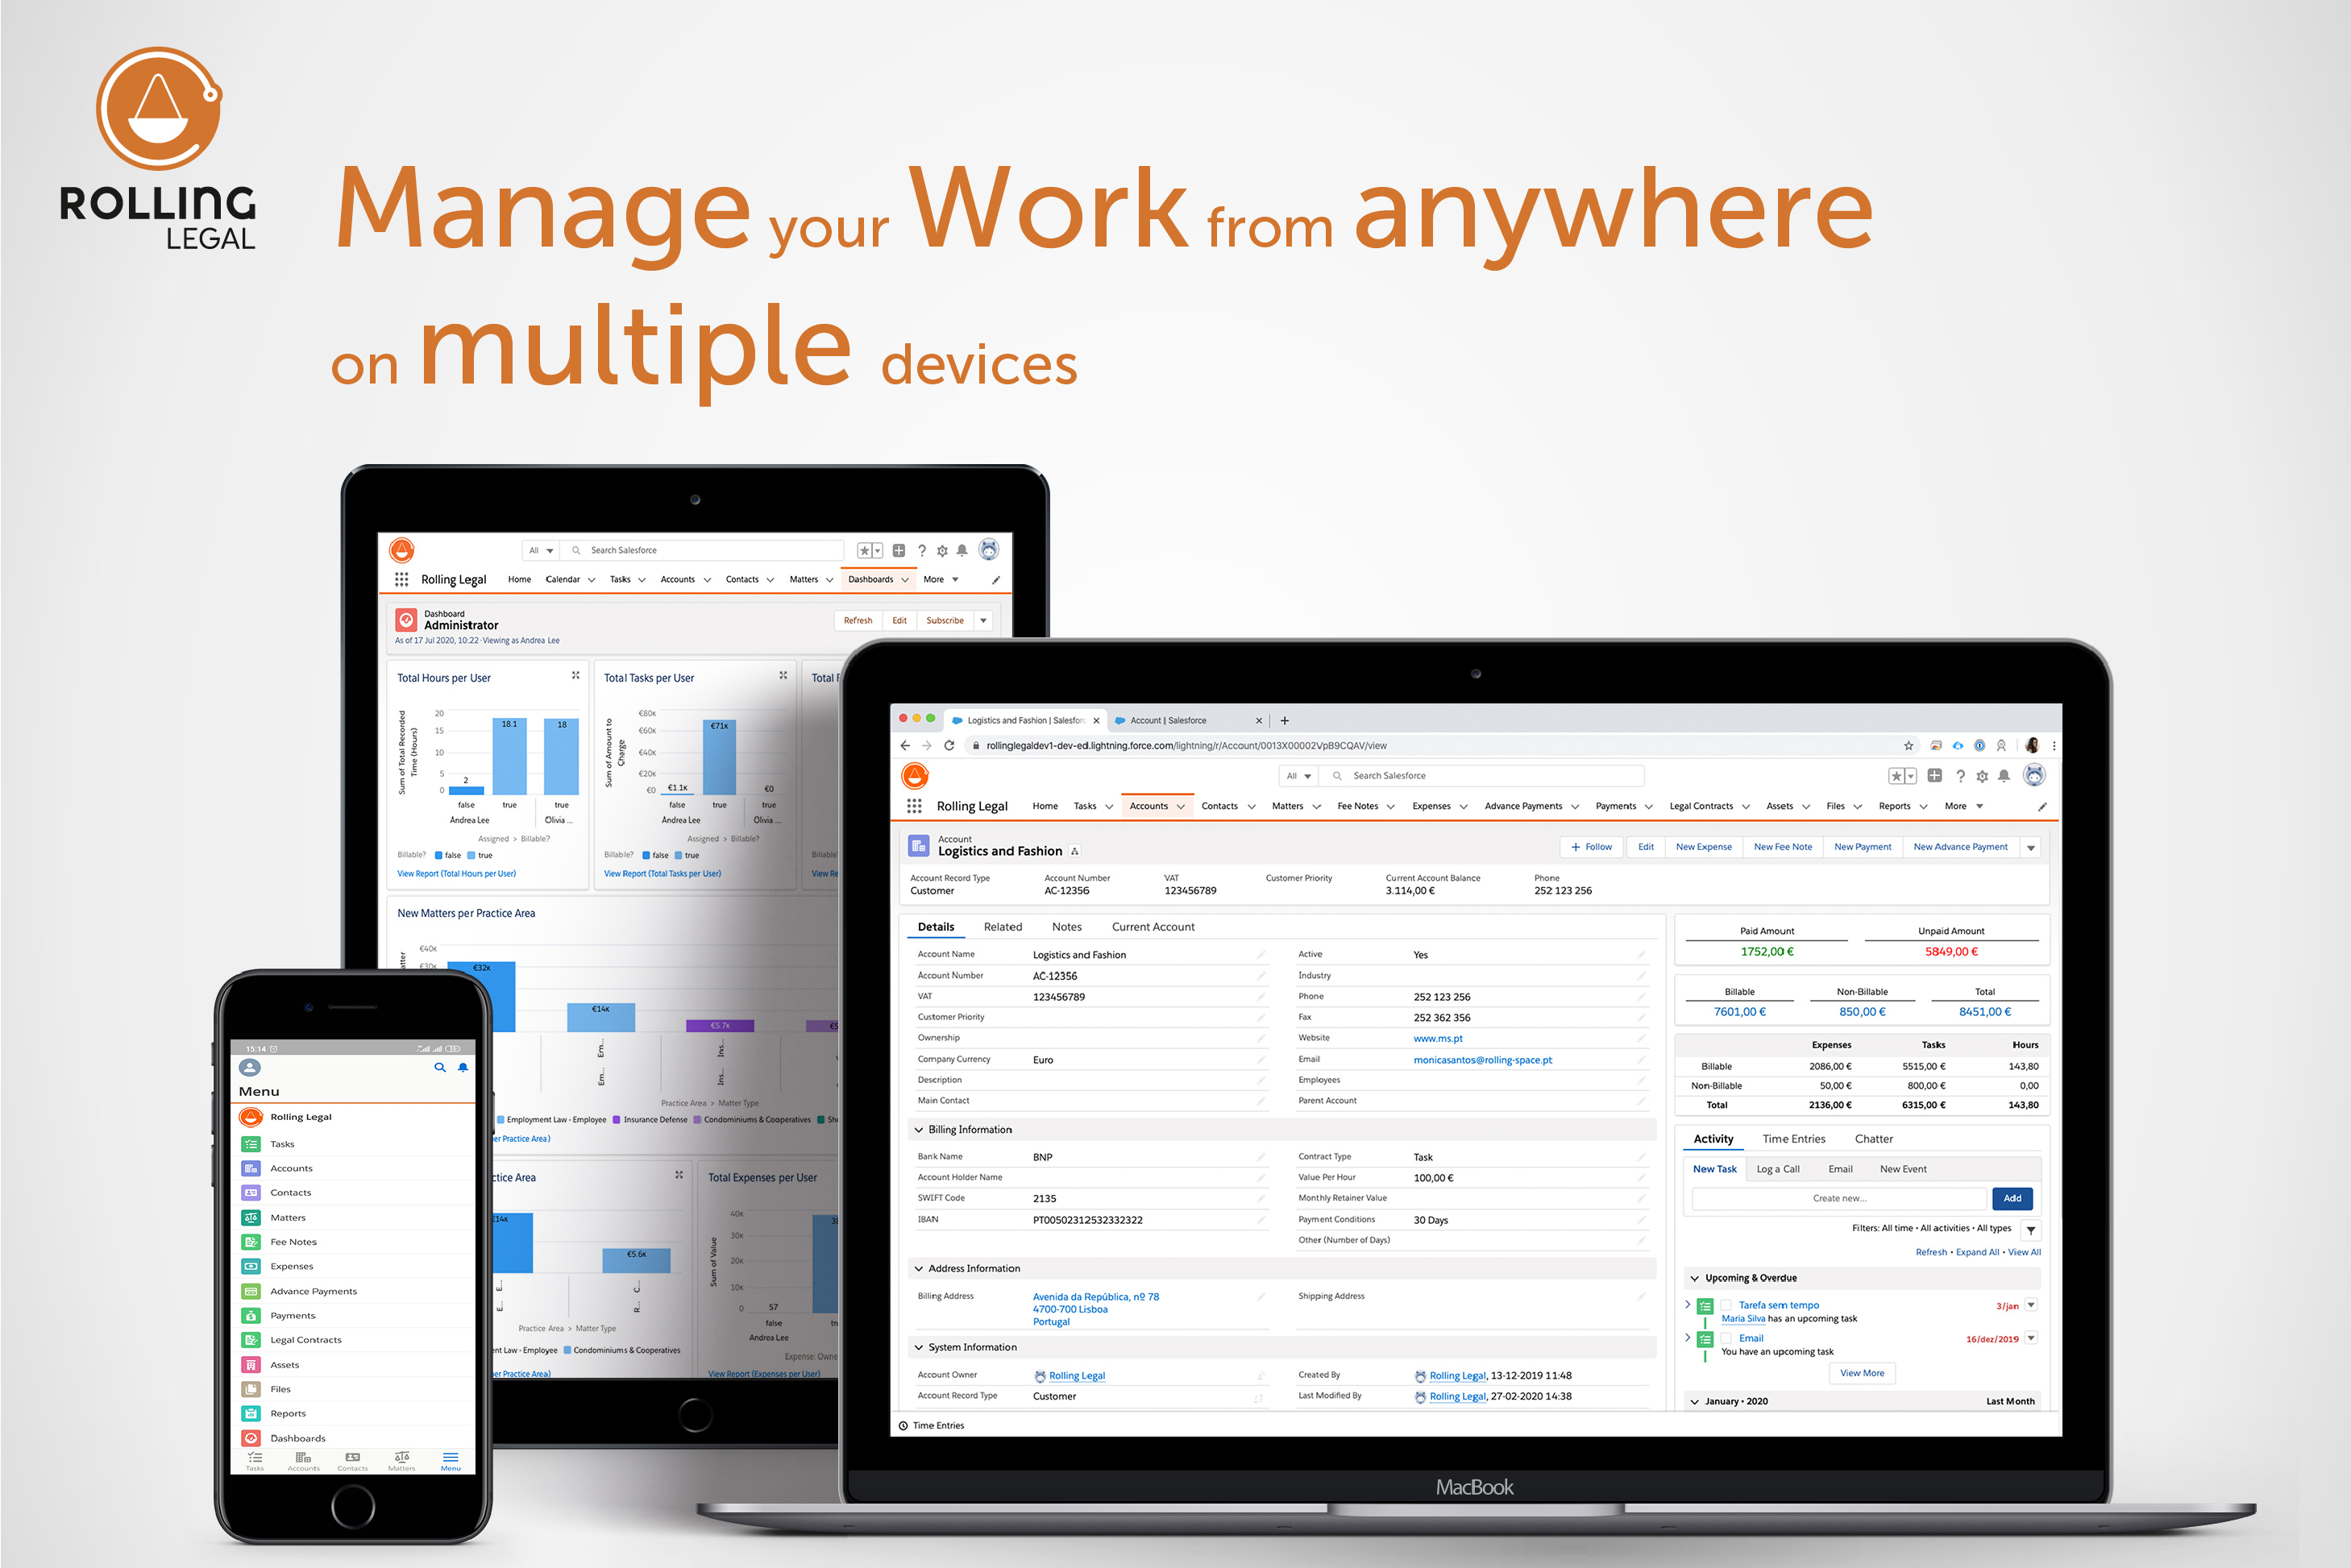 Rolling Legal - The complete solution for Lawyers! Manage your Work from anywhere on multiple devices